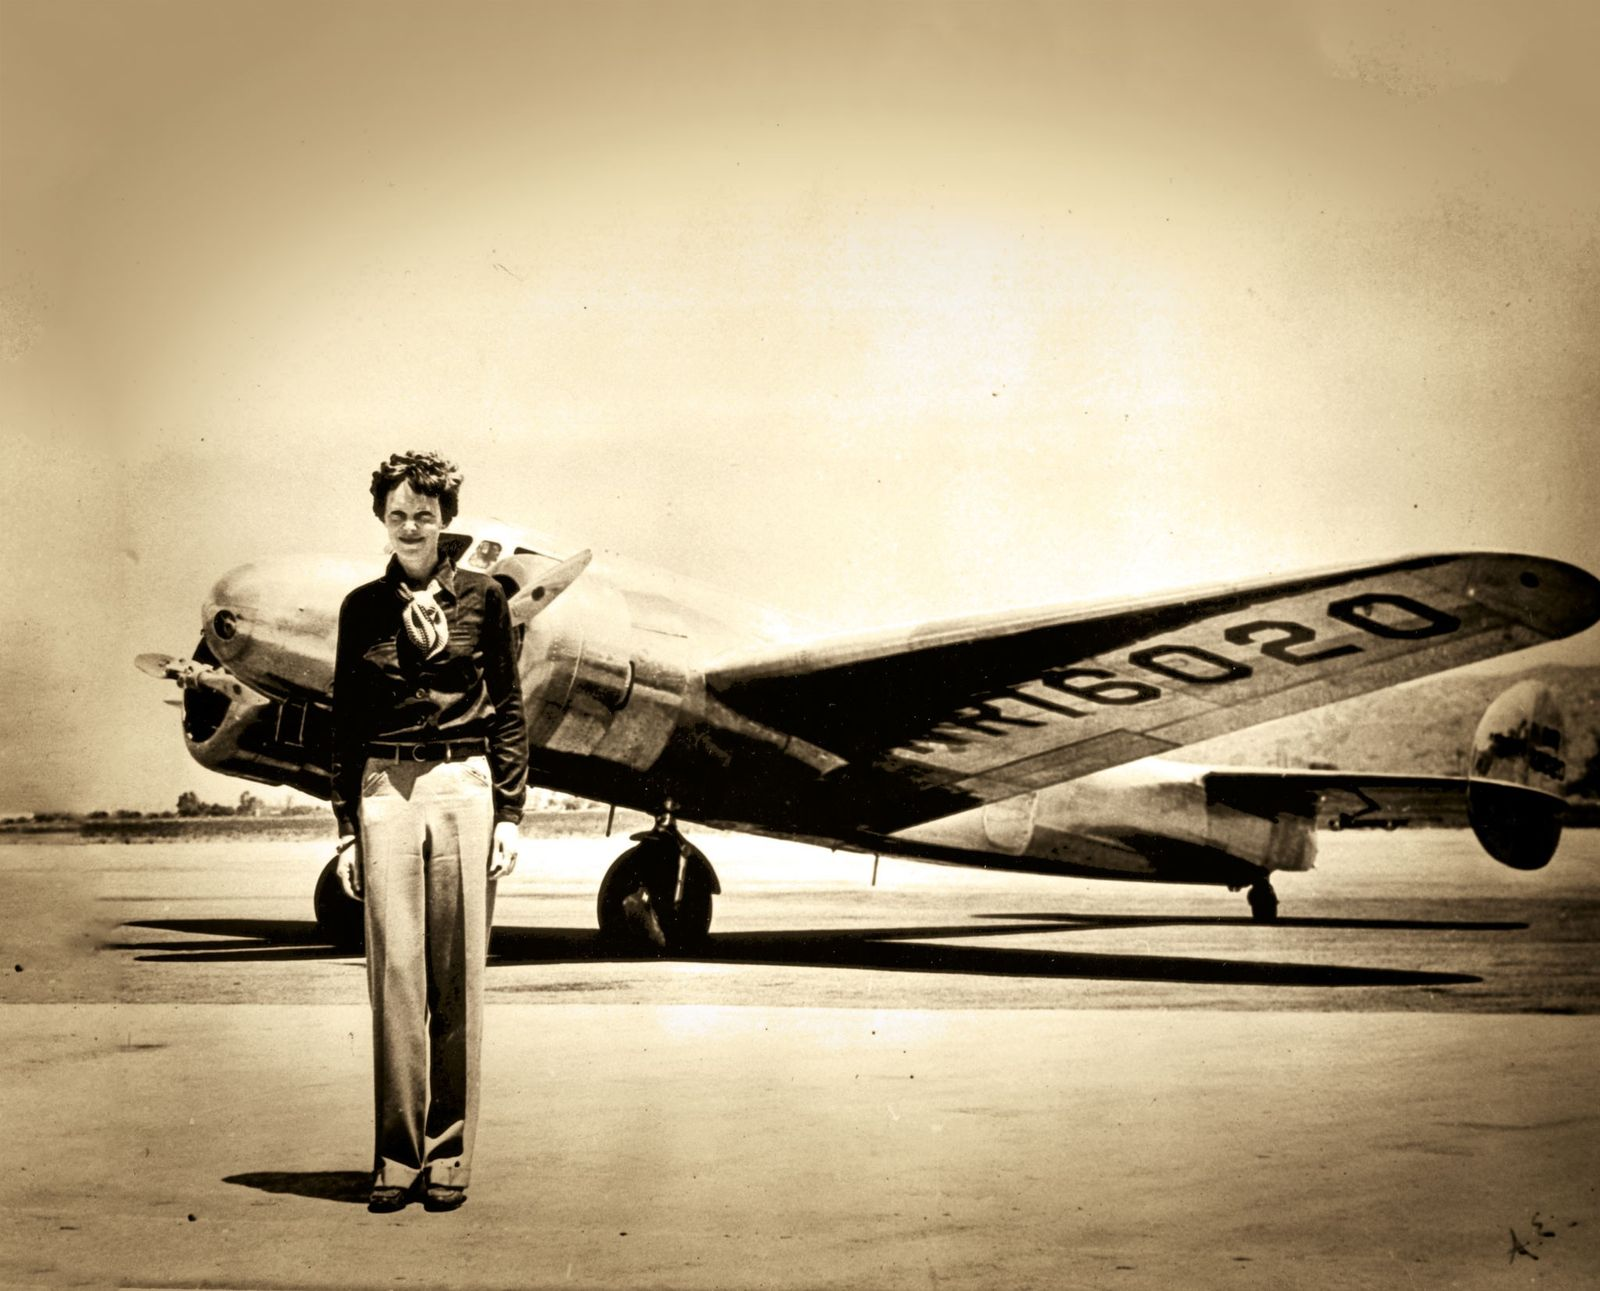 Missing! The unsolved mystery of Amelia Earhart's last flight